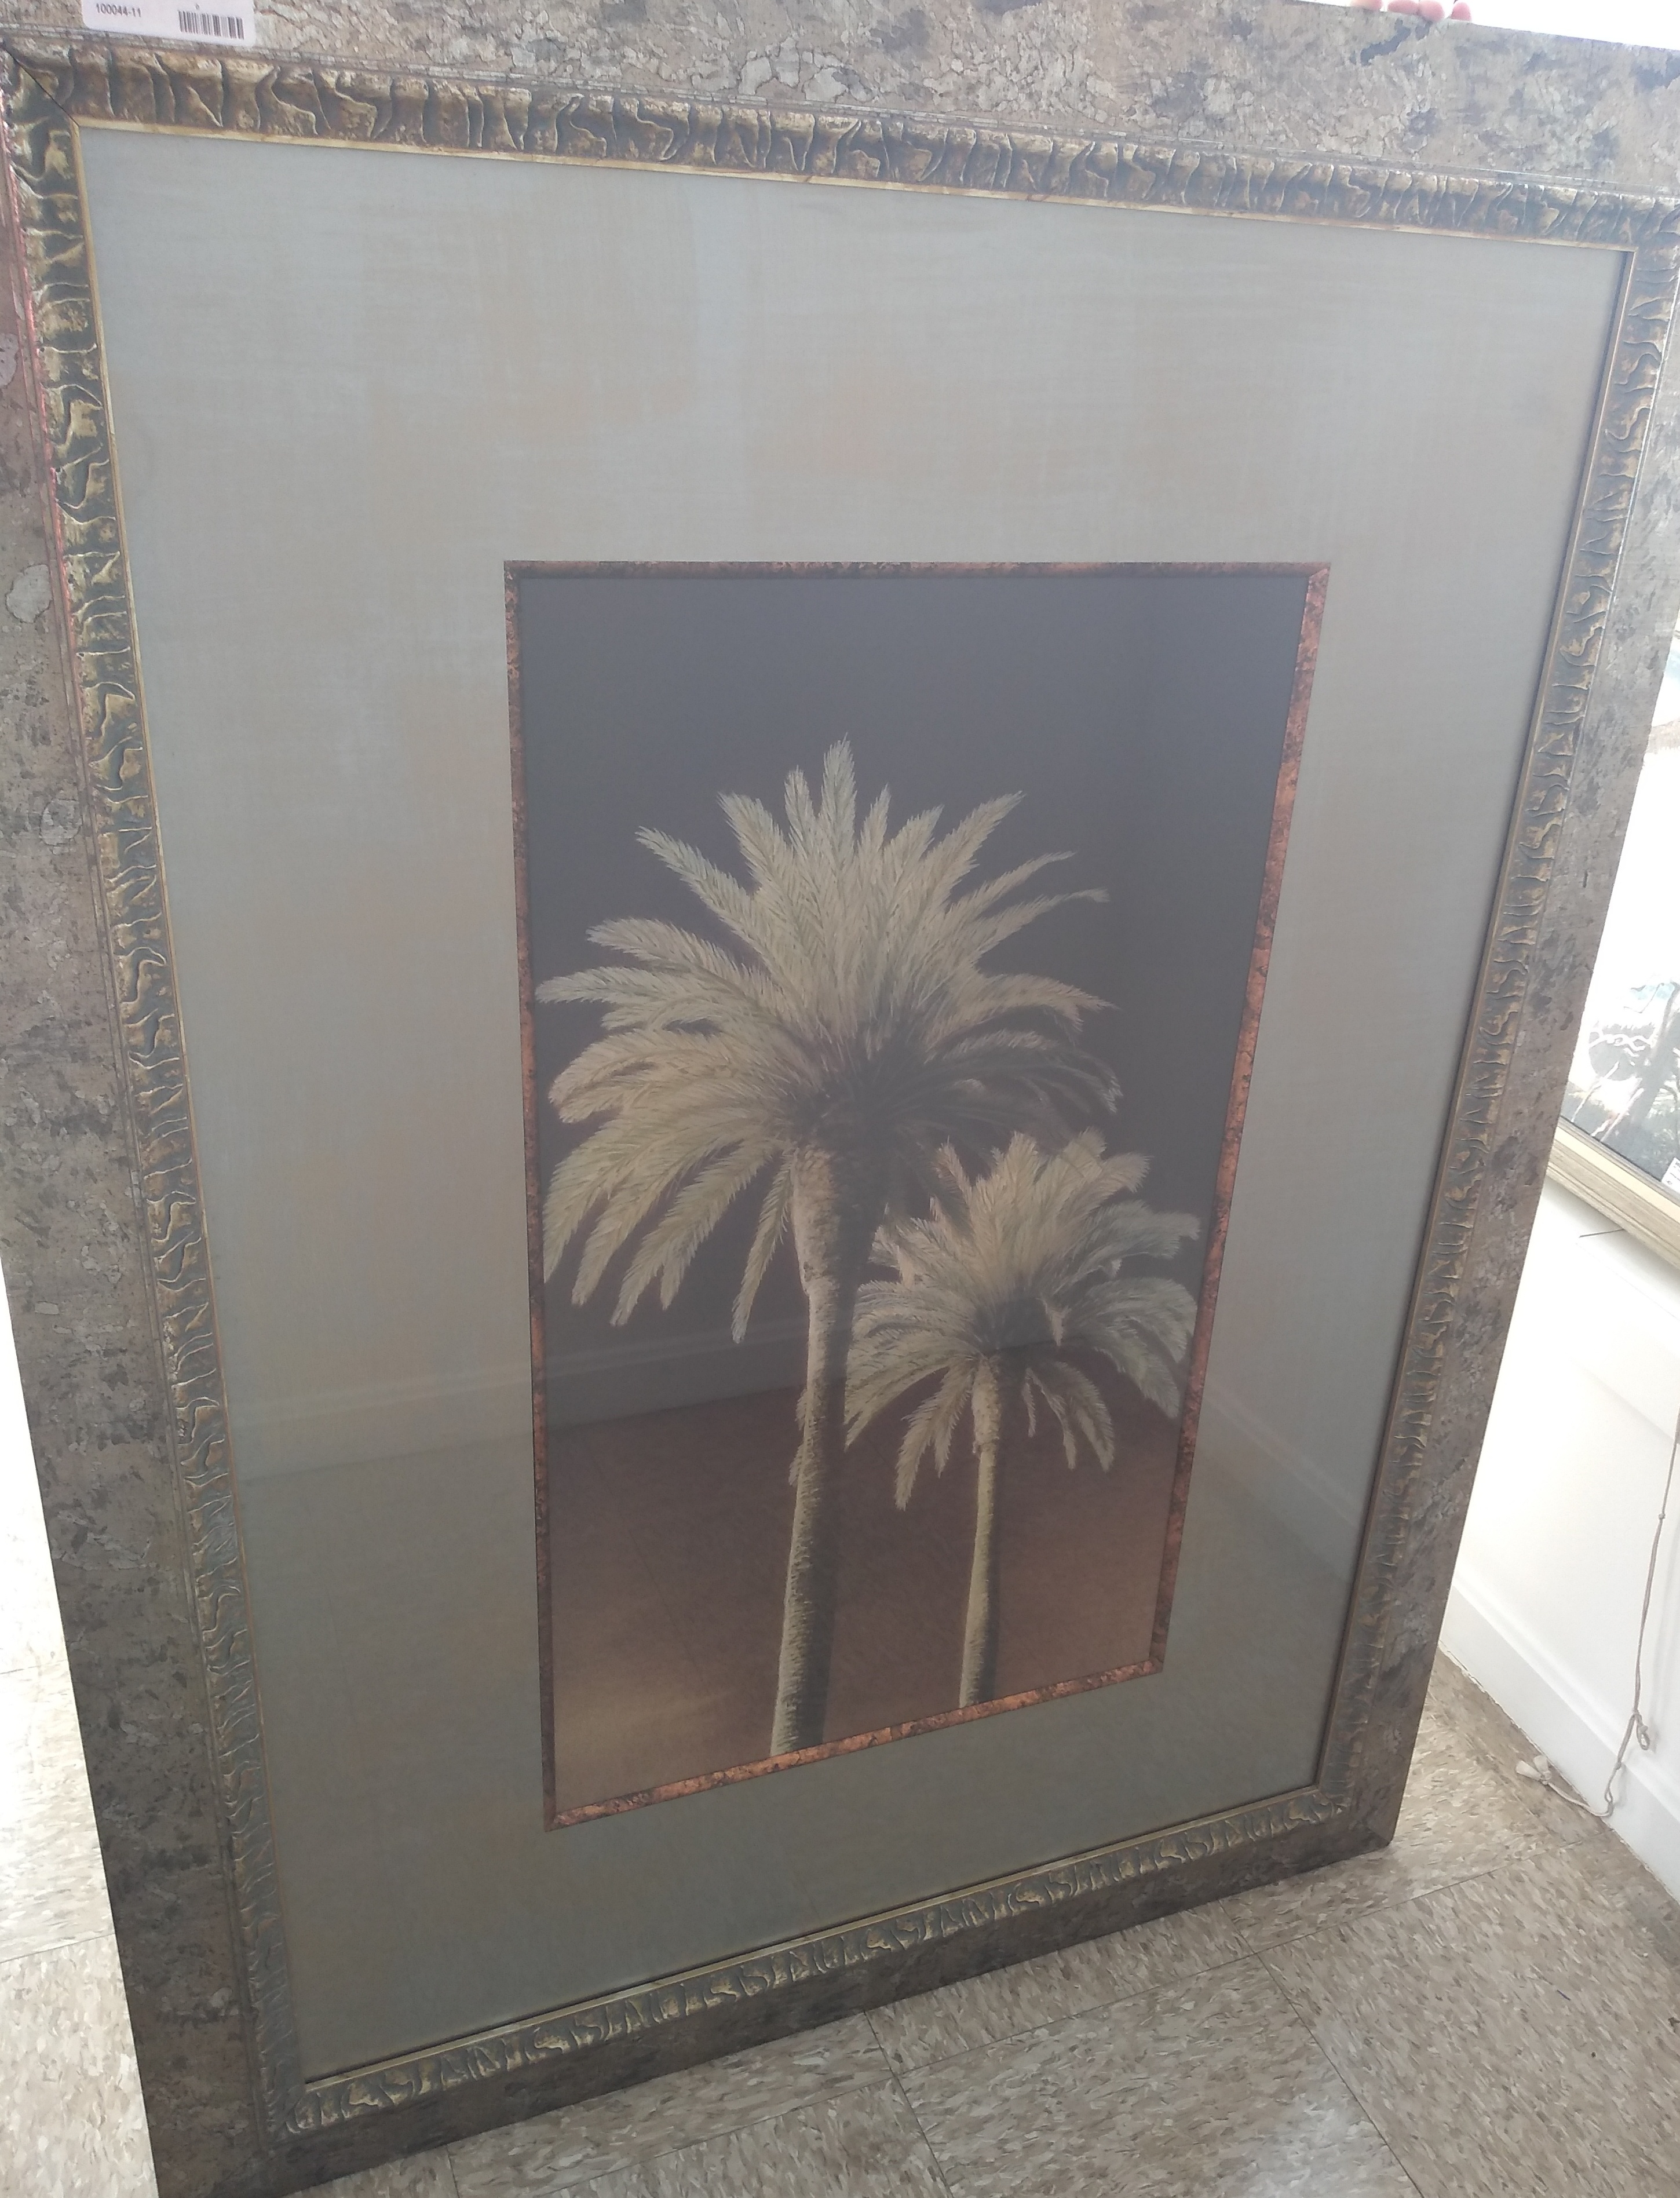 PALM TREE PICTURES IN FRAME